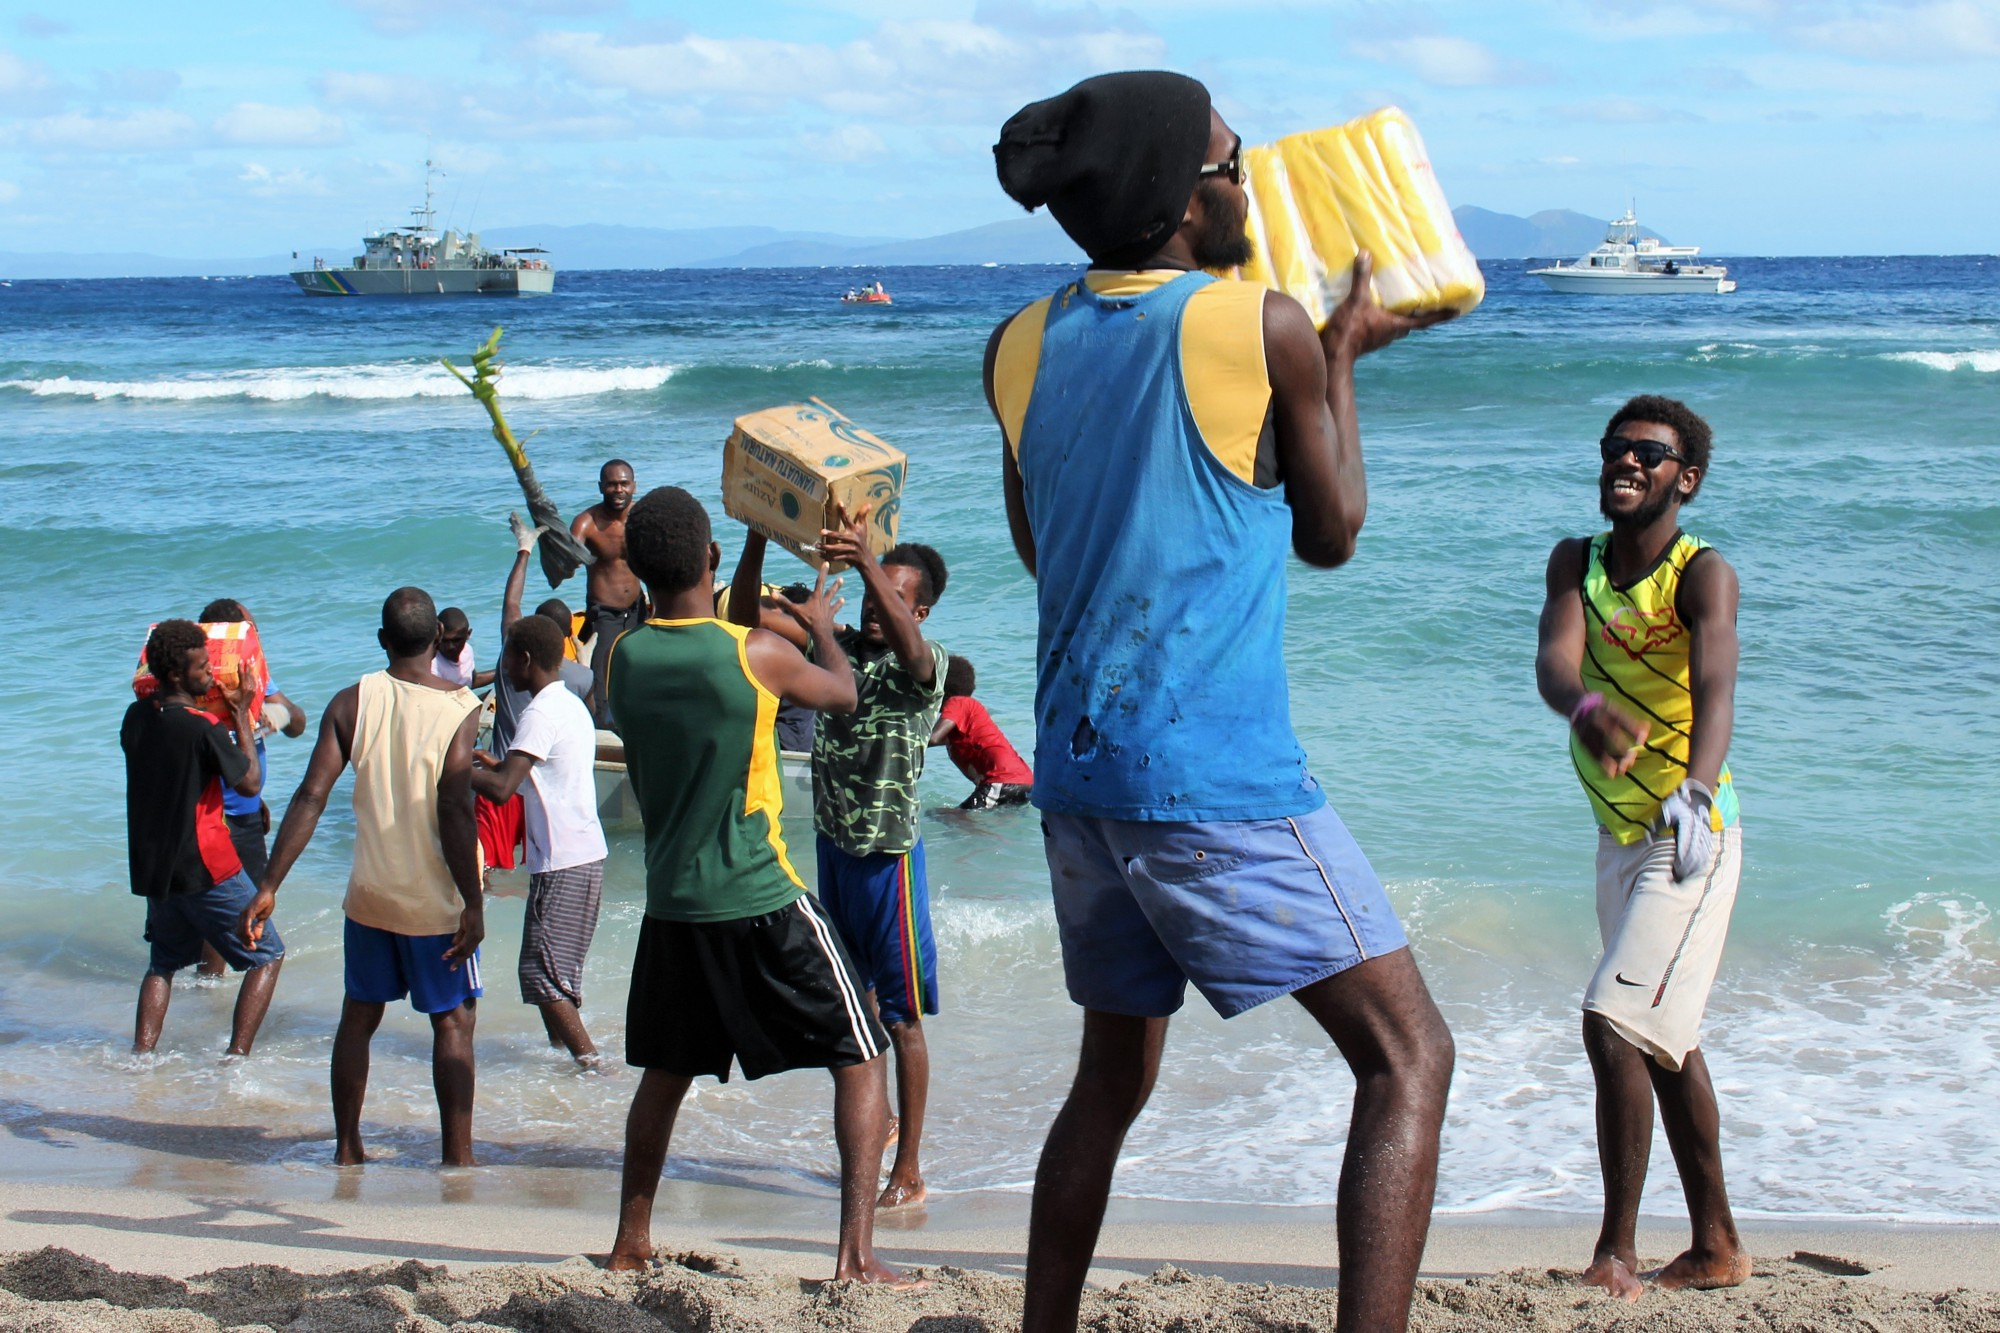 Community Members unloading food supplies and NFI kits in Mataso Island, Vanuatu (Alberto Preato / IOM)